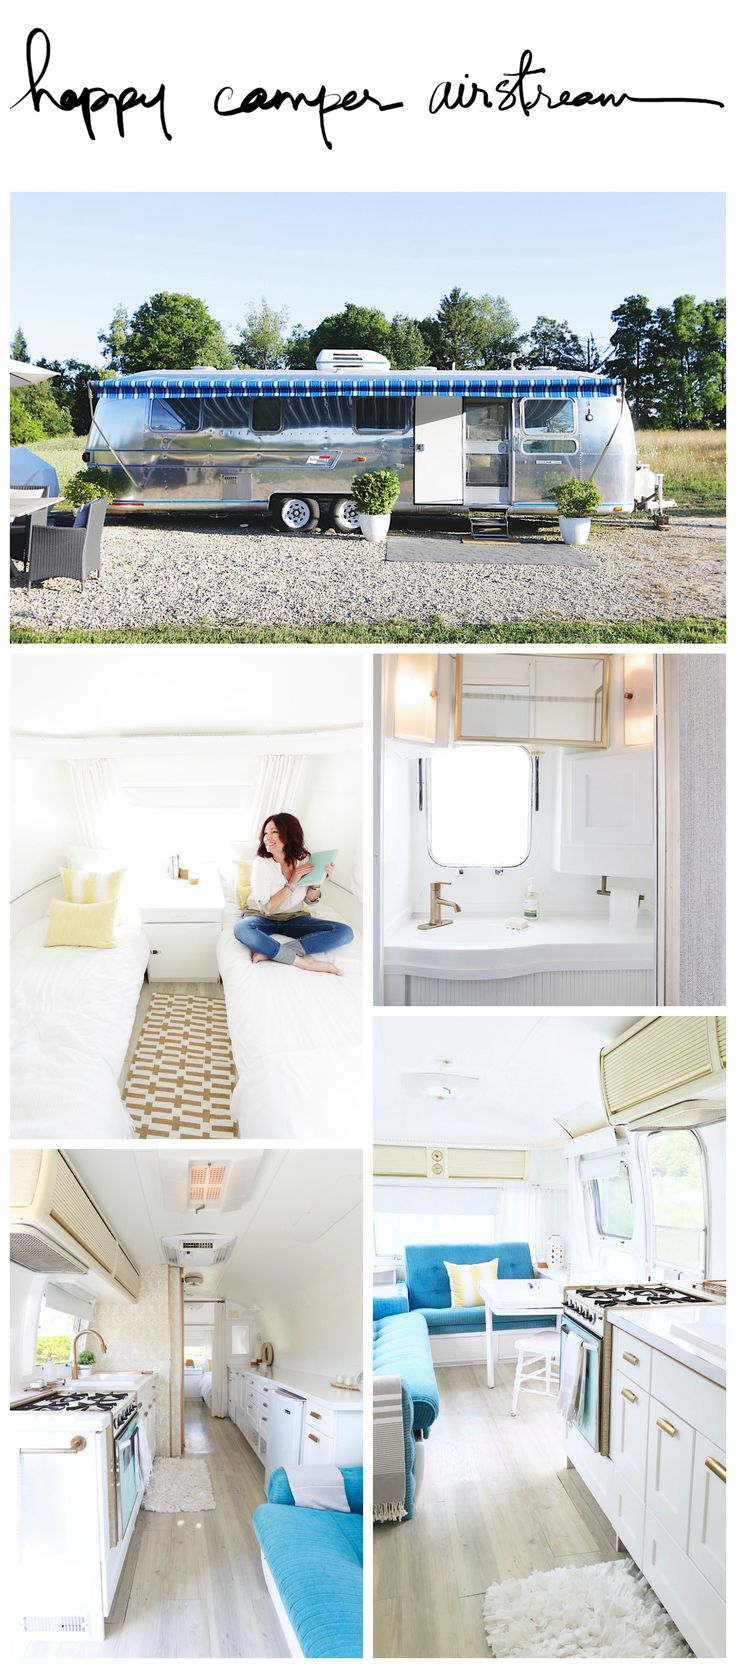 VIDEO: Before & after airstream renovation - Design The Life You Want To Live